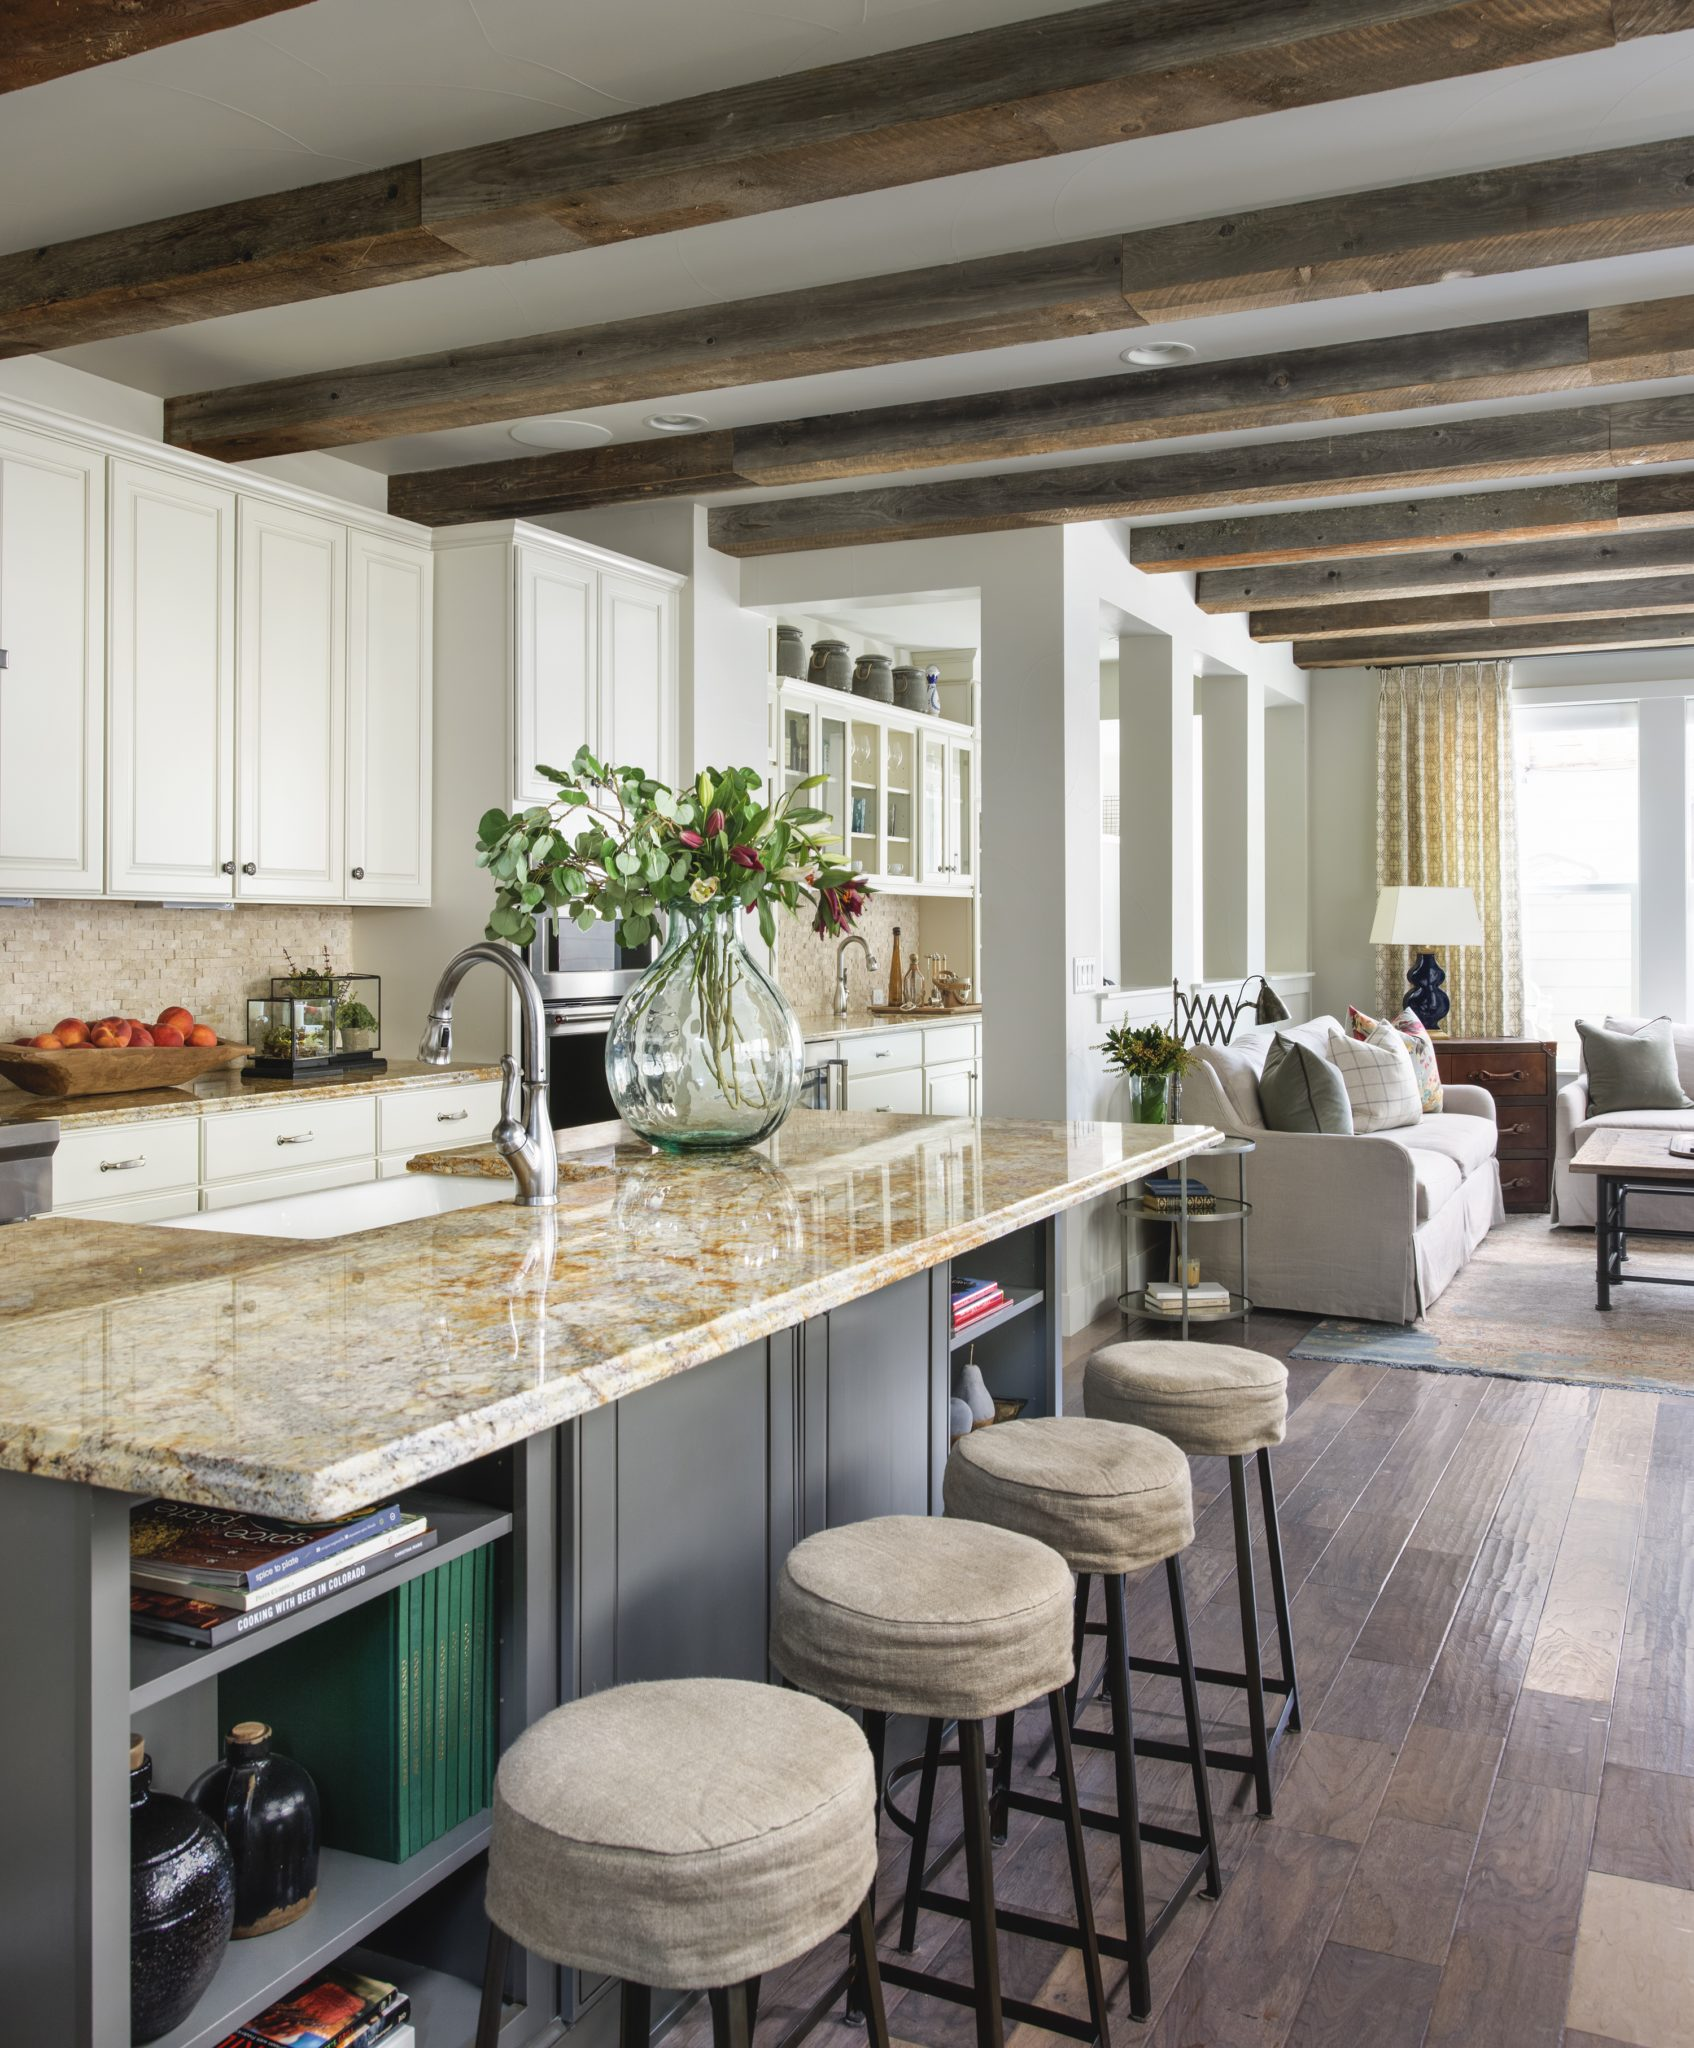 Traditional farmhouse kitchen with island bar seating by Duet Design Group